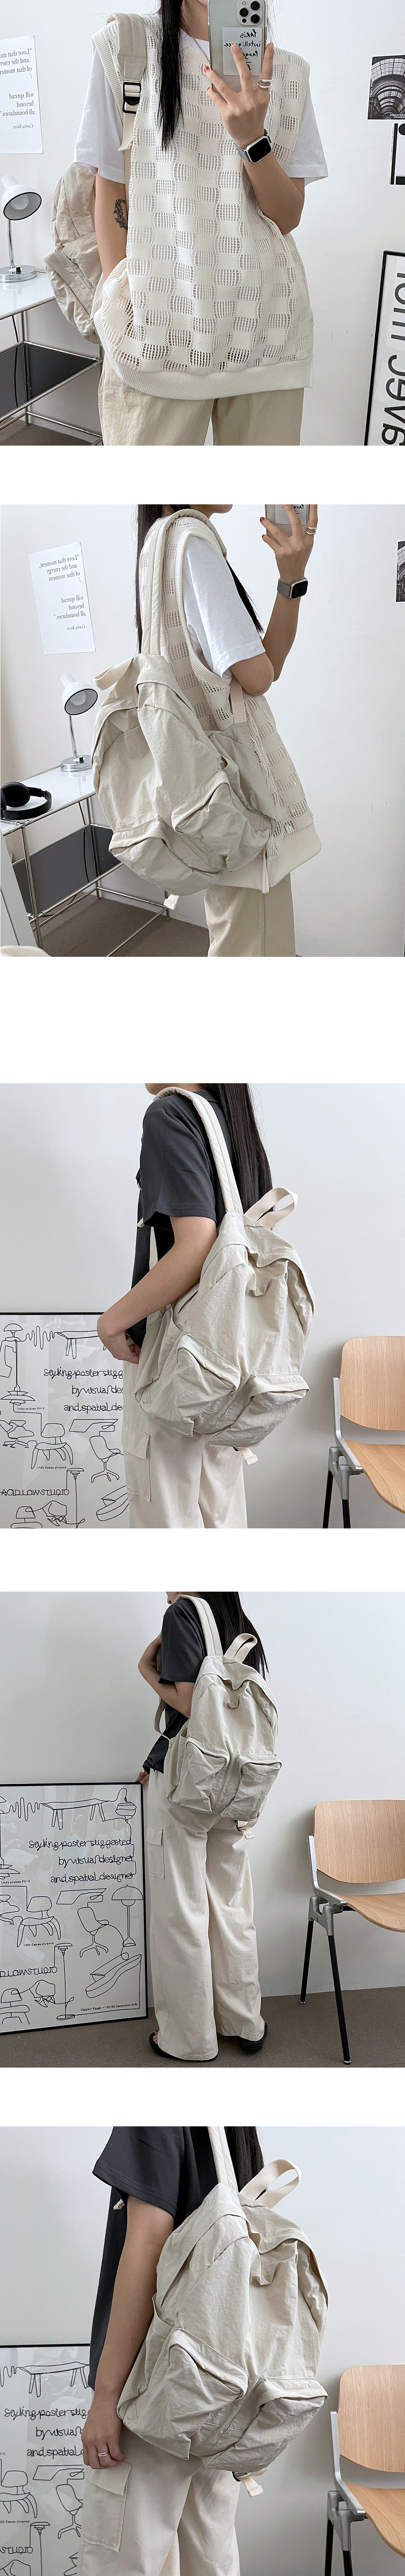 Creamy Daily Two Pocket Backpack